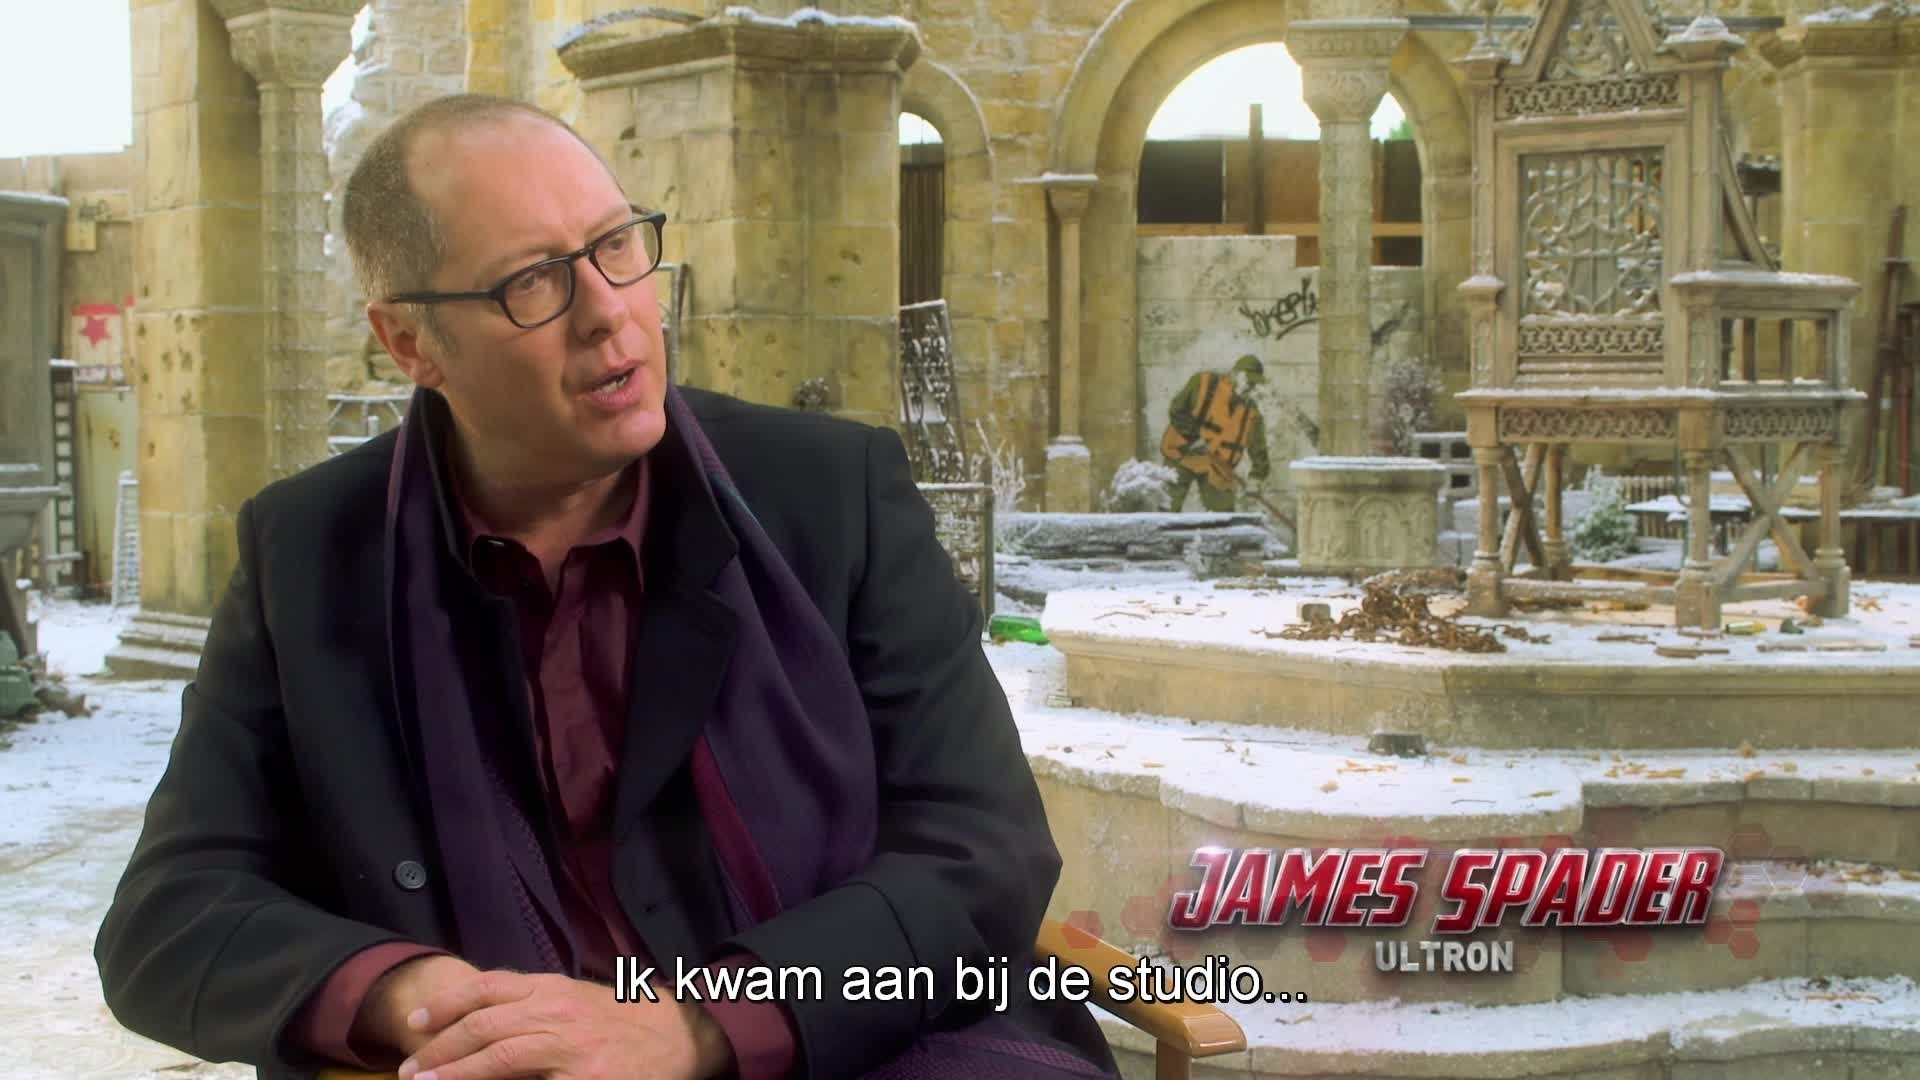 Marvel's The Avengers: Age Of Ultron - Working with Spader